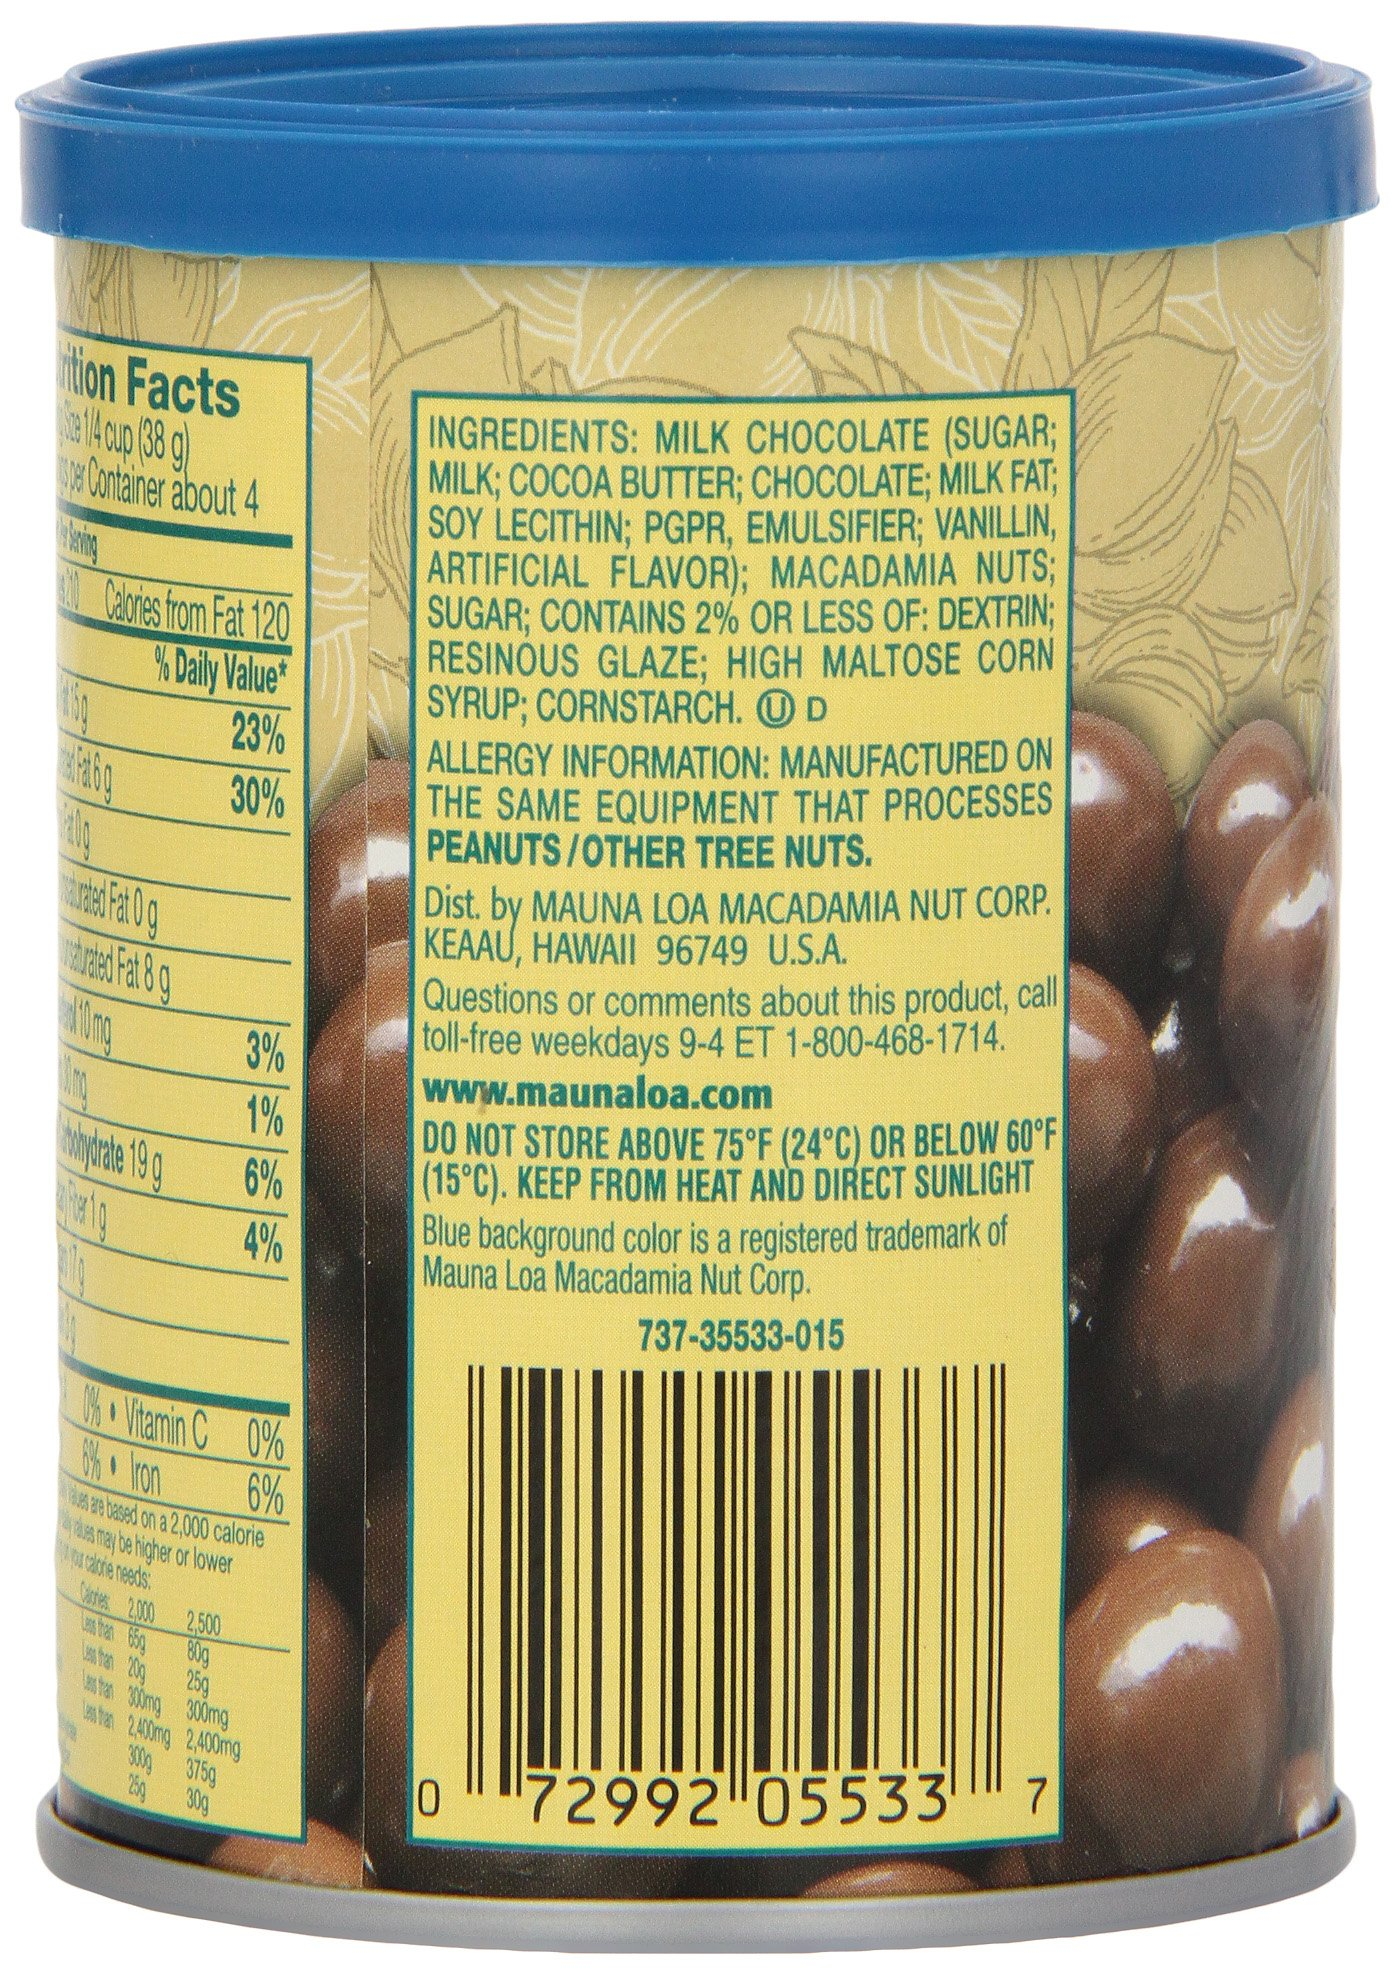 Mauna Loa Macadamias, Milk Chocolate, 5.5-Ounce Containers (Pack of 3)